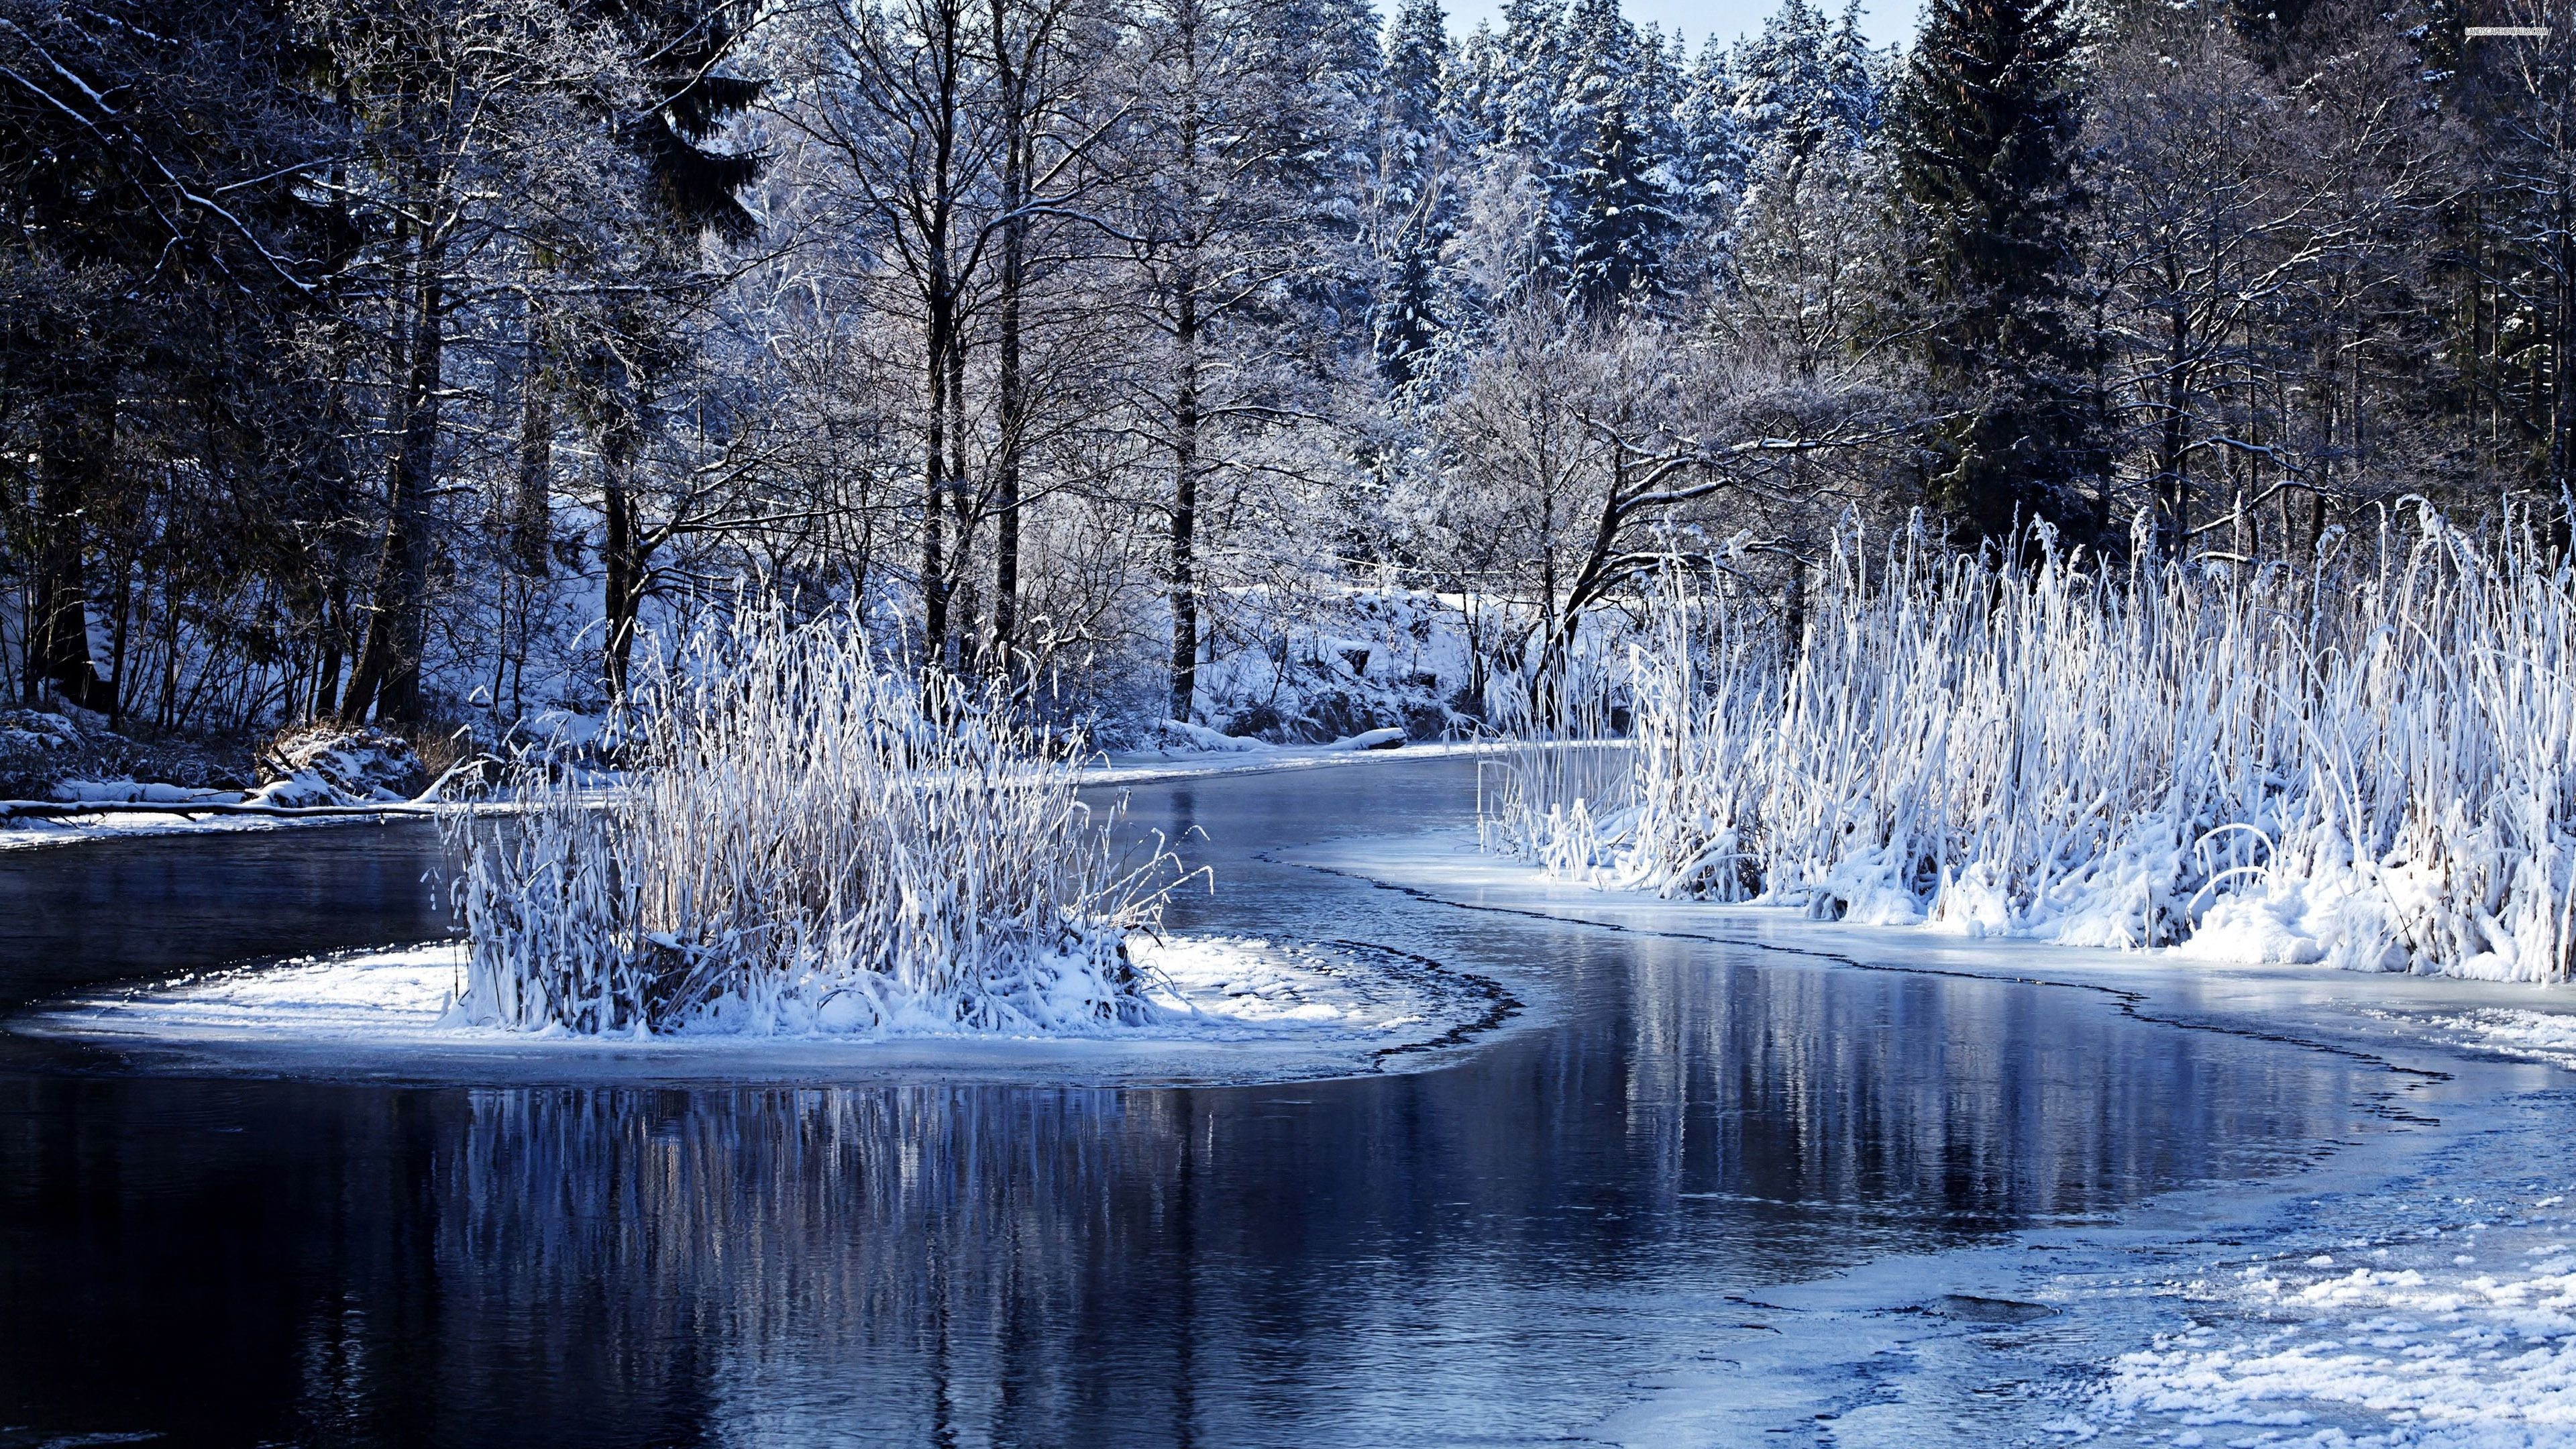 4k ultra hd wallpapers,winter,natural landscape,water,nature,snow